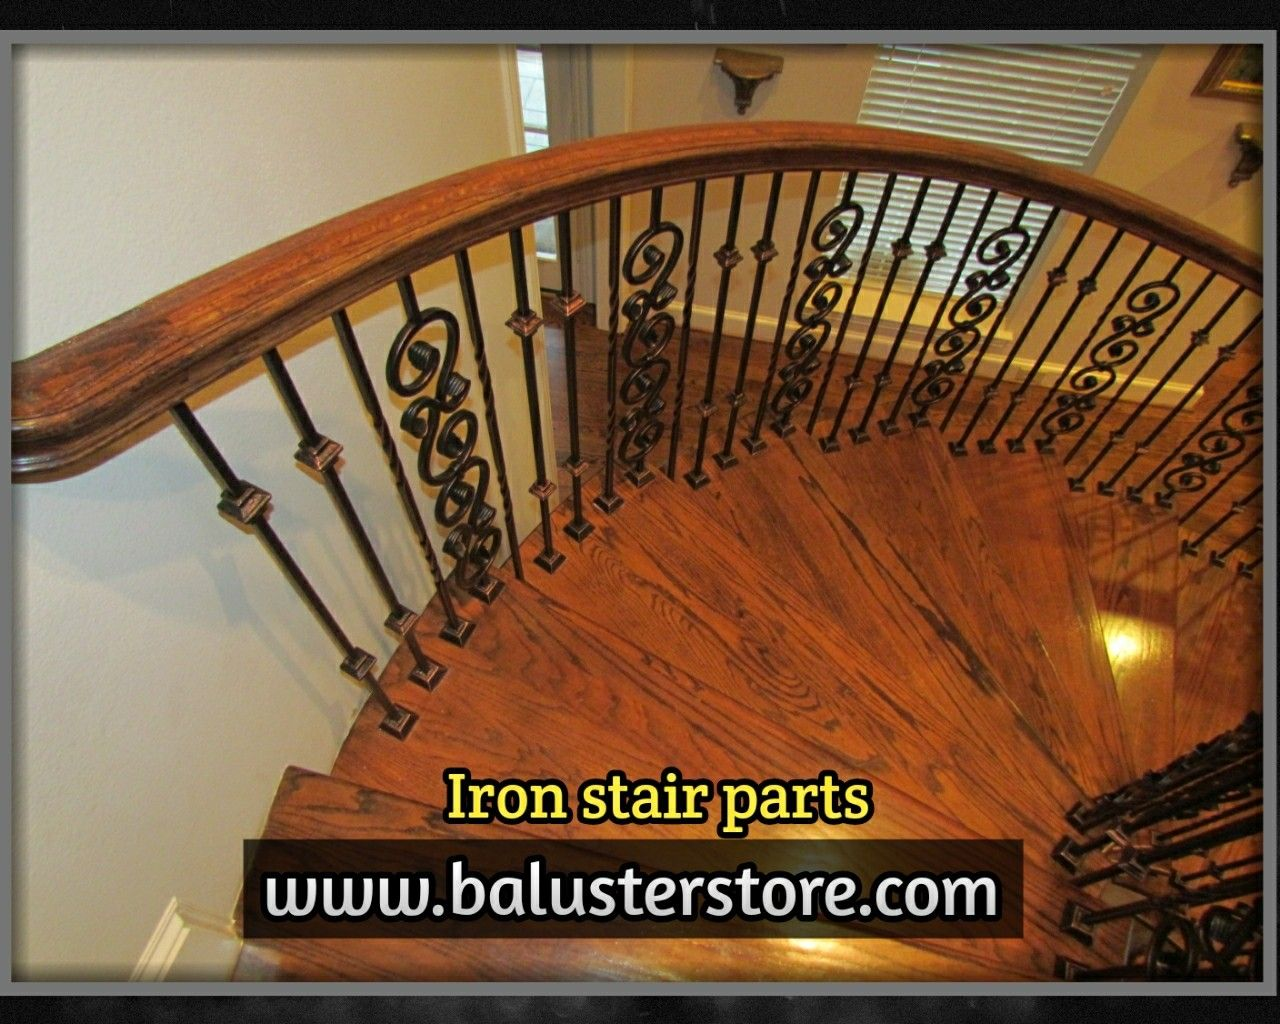 Www.balusterstore.com Shop.balusterstore.com Iron Balusters Iron Stair  Parts Iron Stair Railing Parts For Stairs Iron Spindles Stair Accessories  Staircase ...